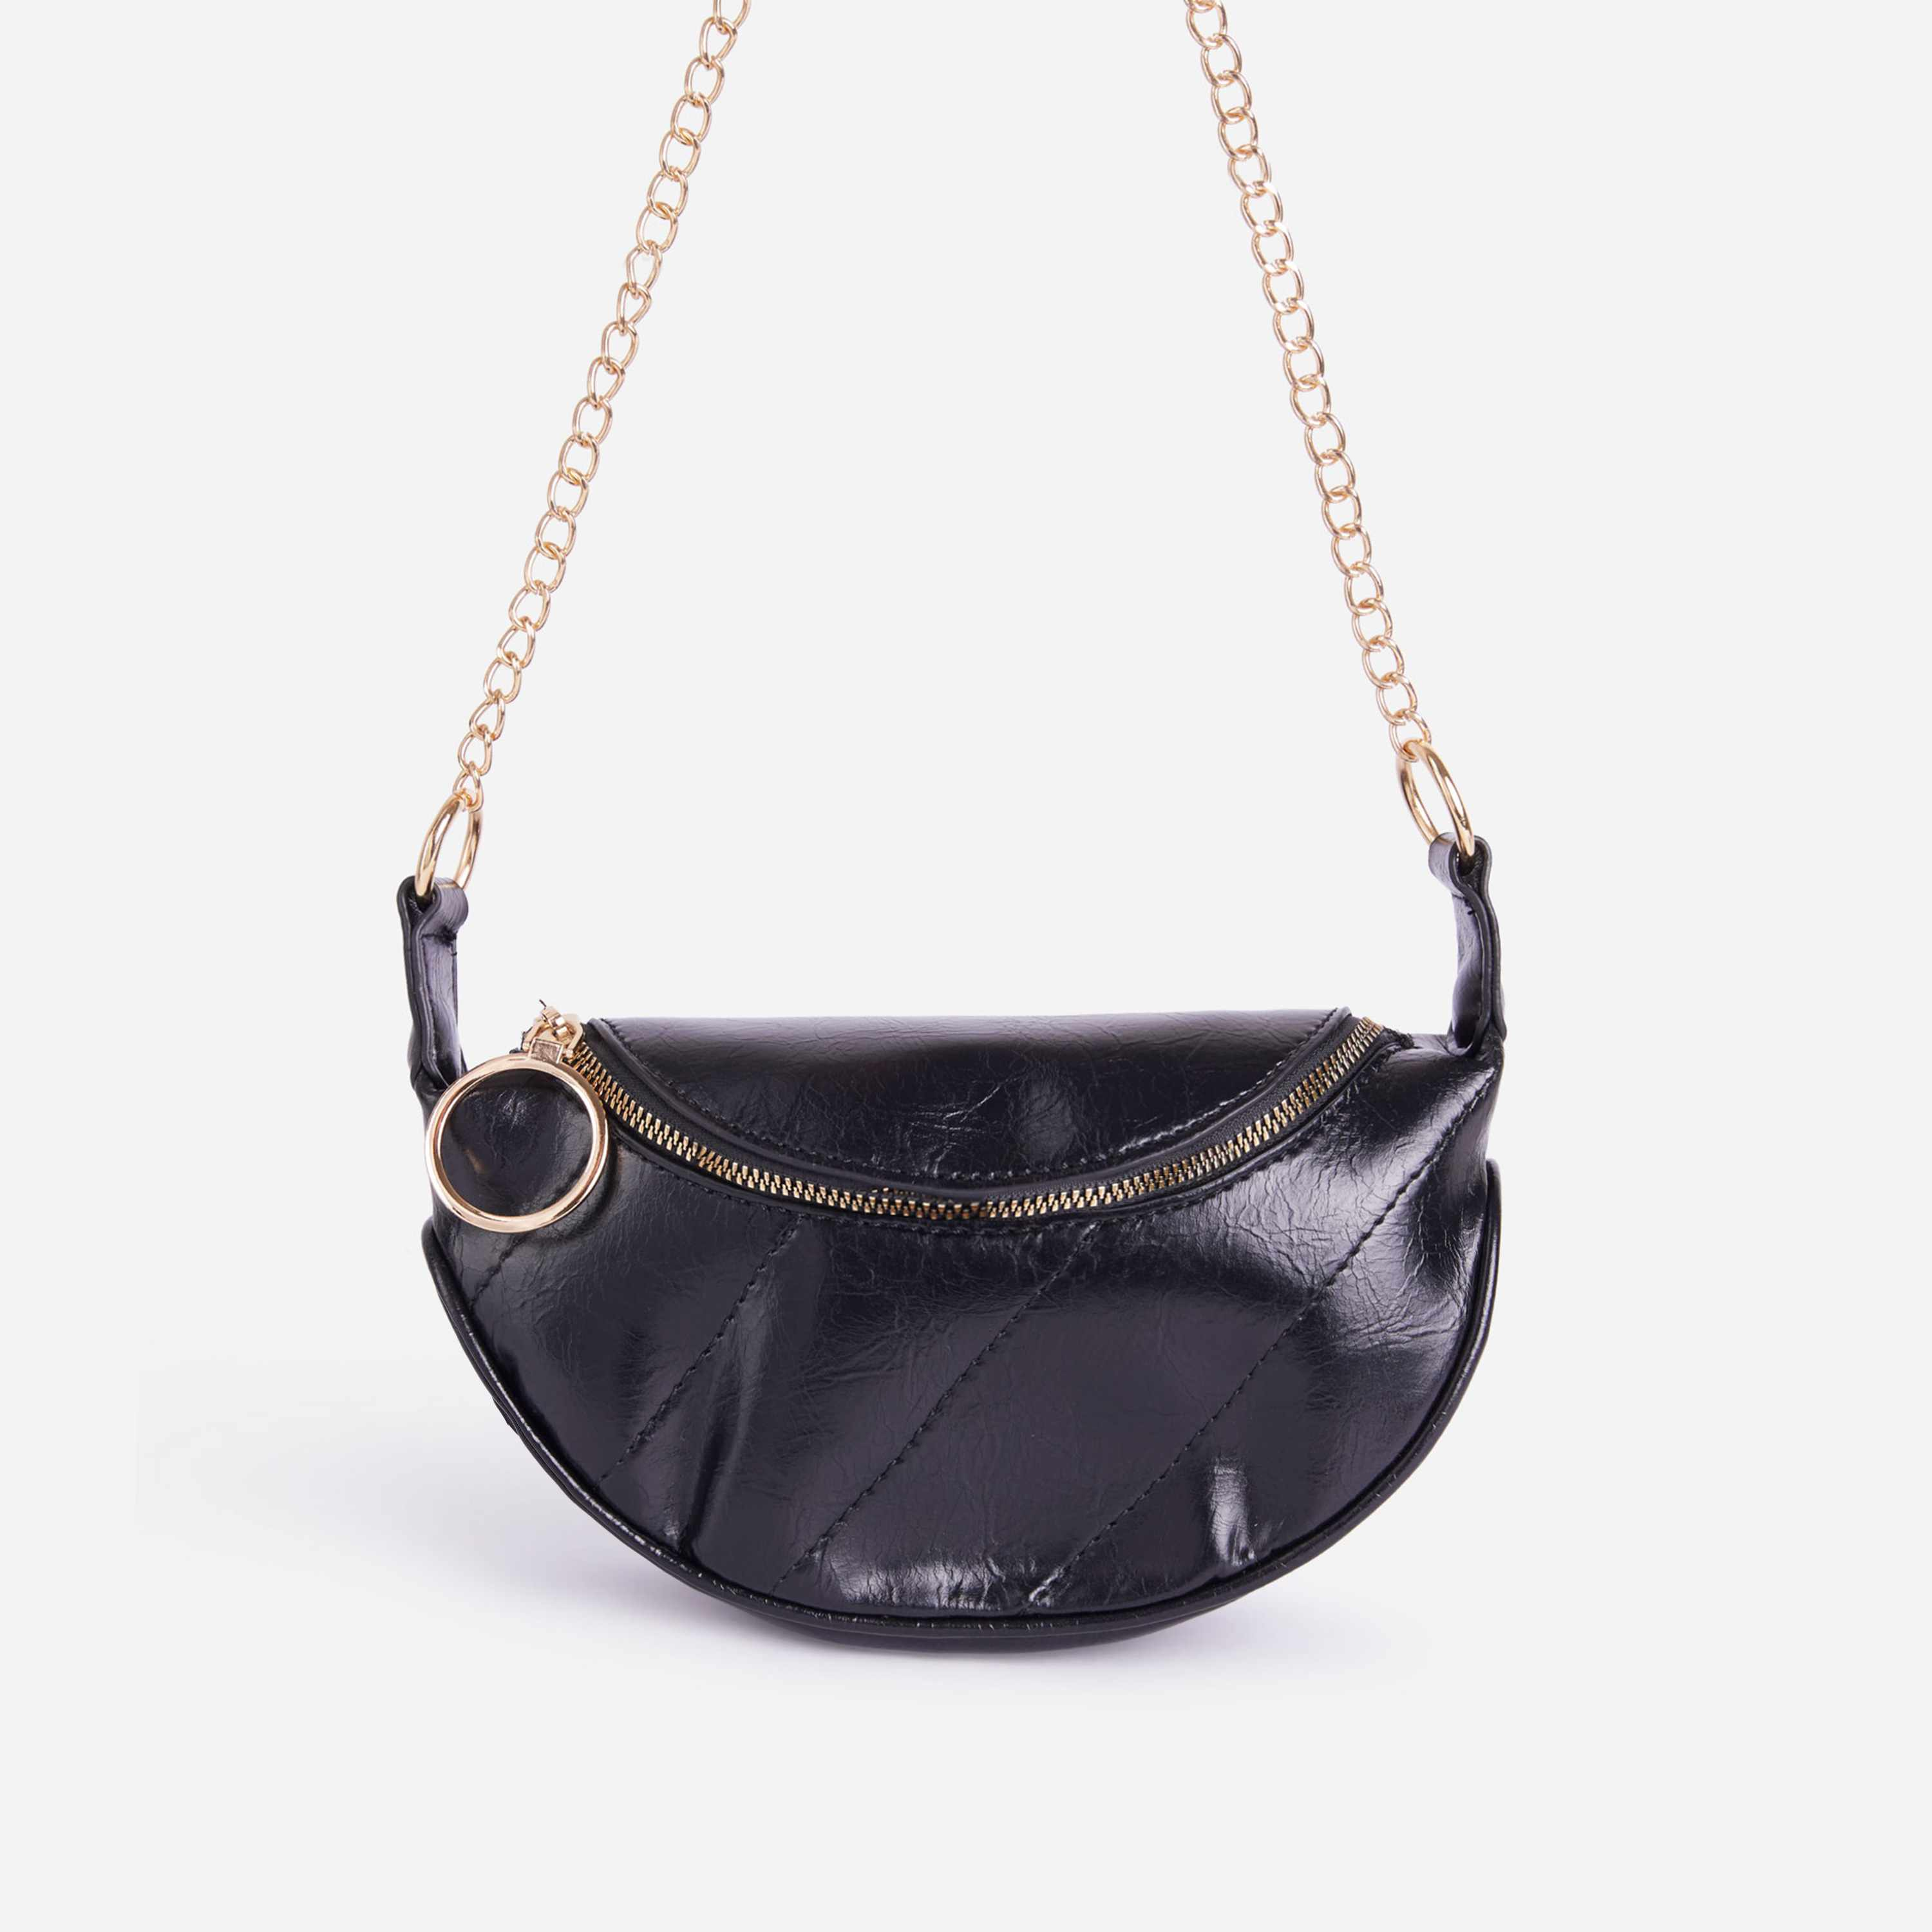 Naomi Chain Detail Cross Body Bum Bag In Black Faux Leather